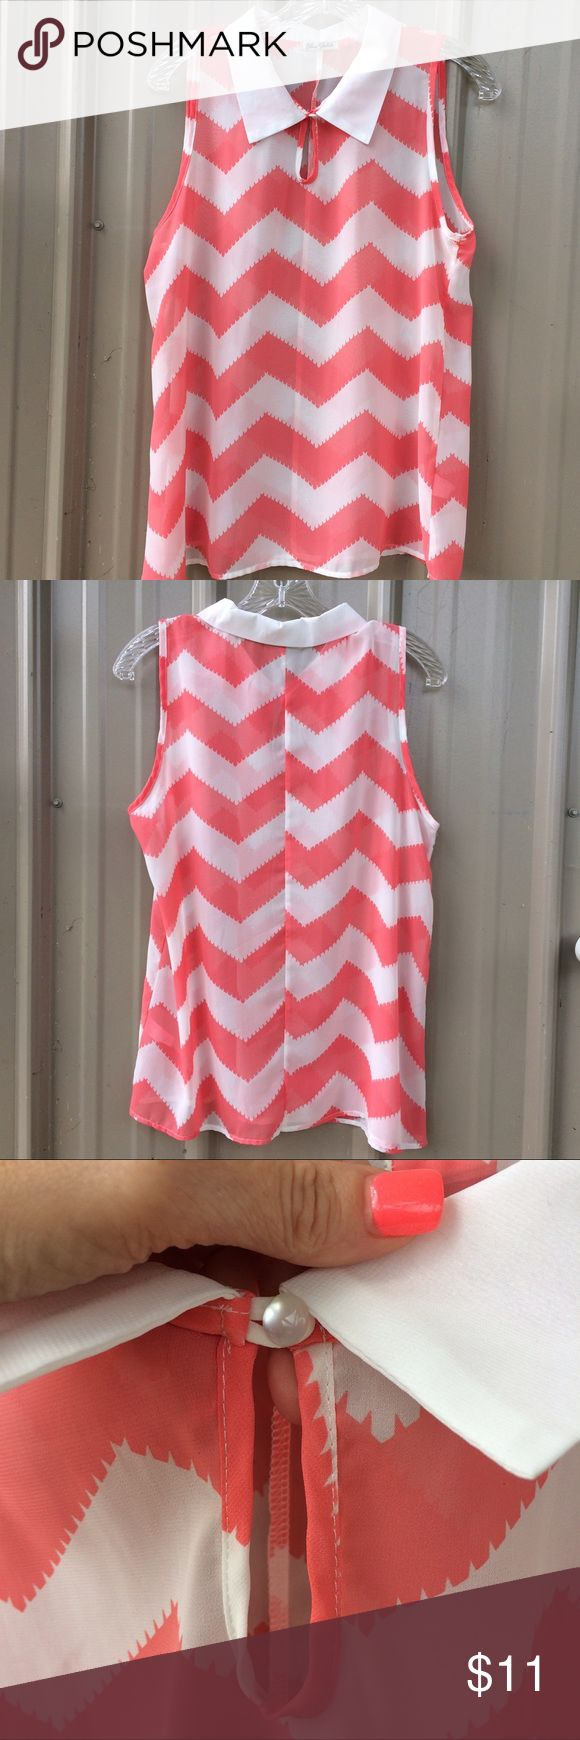 Chiffon🌺 Chevron Blouse A delicate, sleeveless blouse that is in like new condition. It's white with a peachy coral color. No size listed but fits like a small to medium. Blue Sketch Tops Blouses